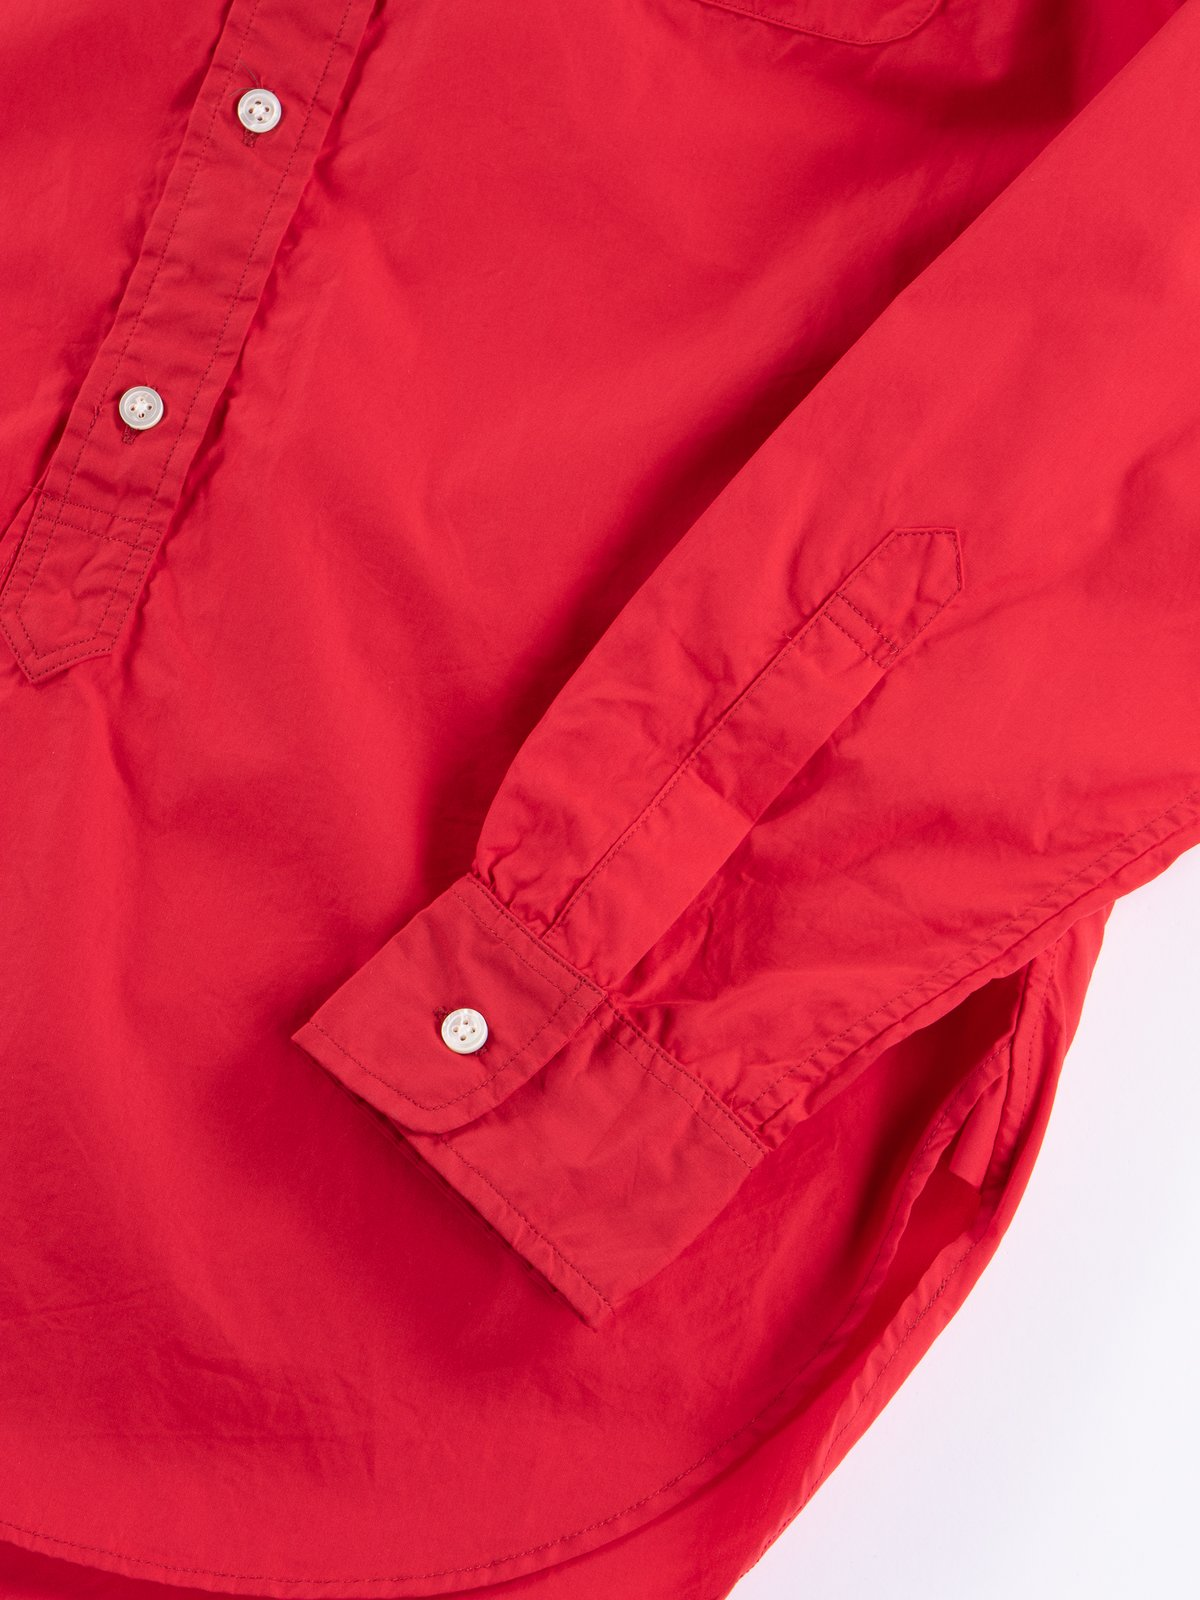 Red 100's 2ply Broadcloth 19th Century BD Shirt - Image 4